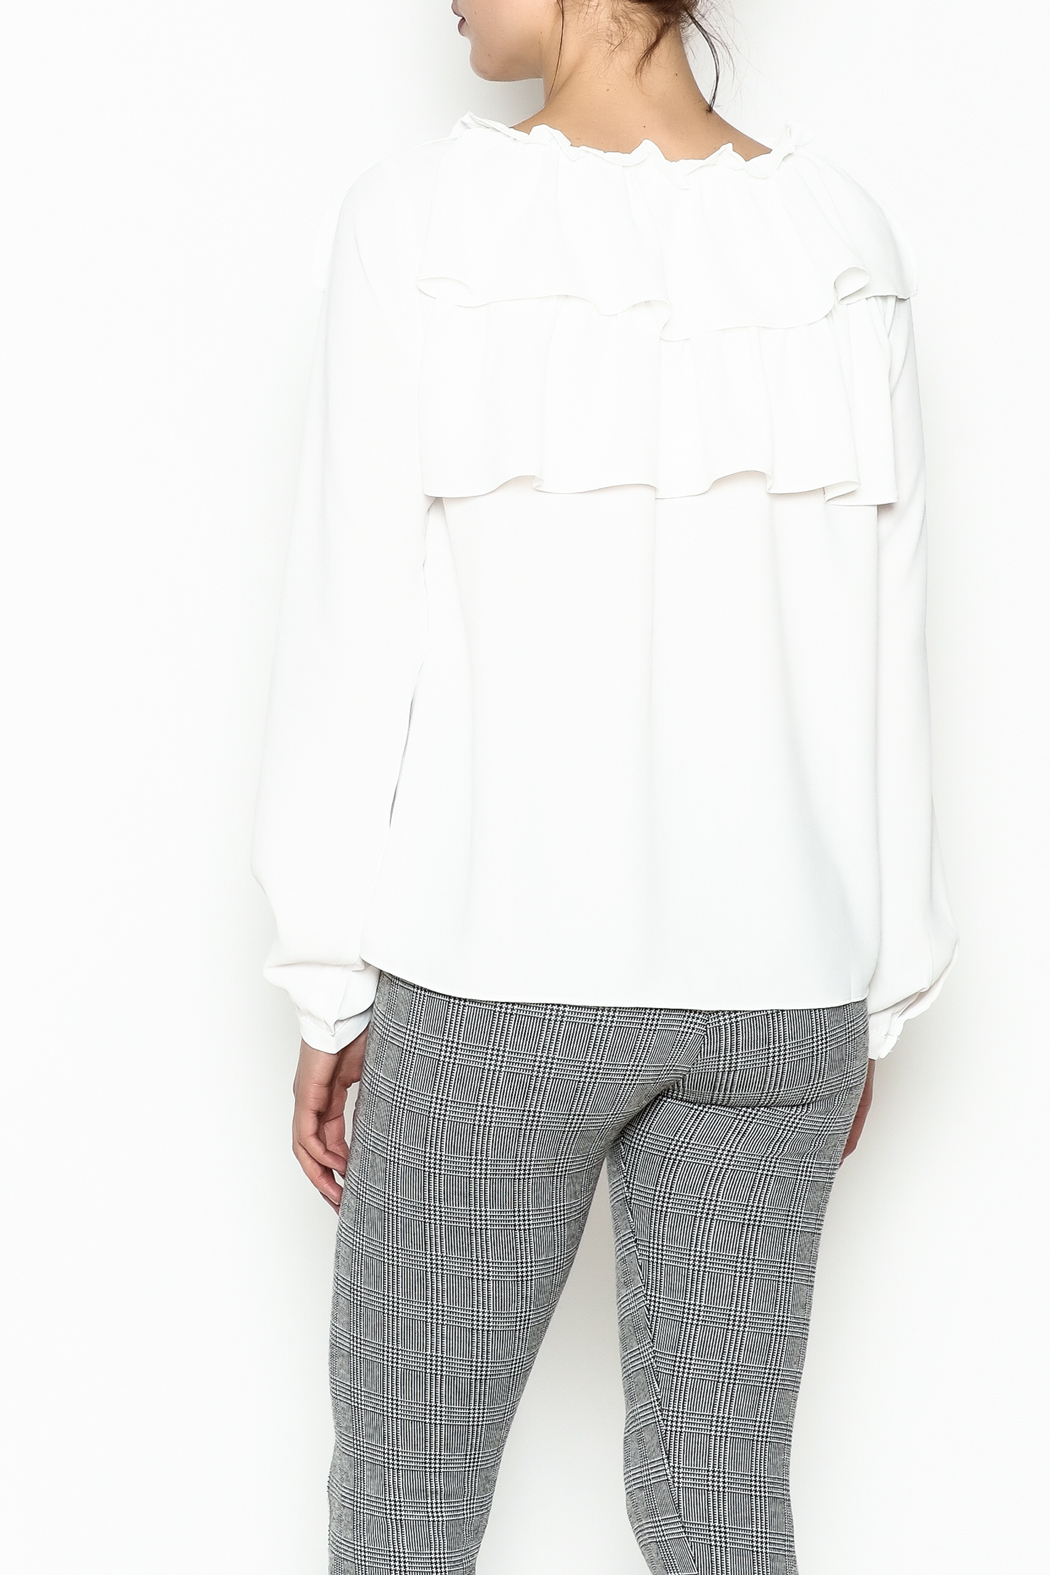 Current Air Meg Blouse - Back Cropped Image